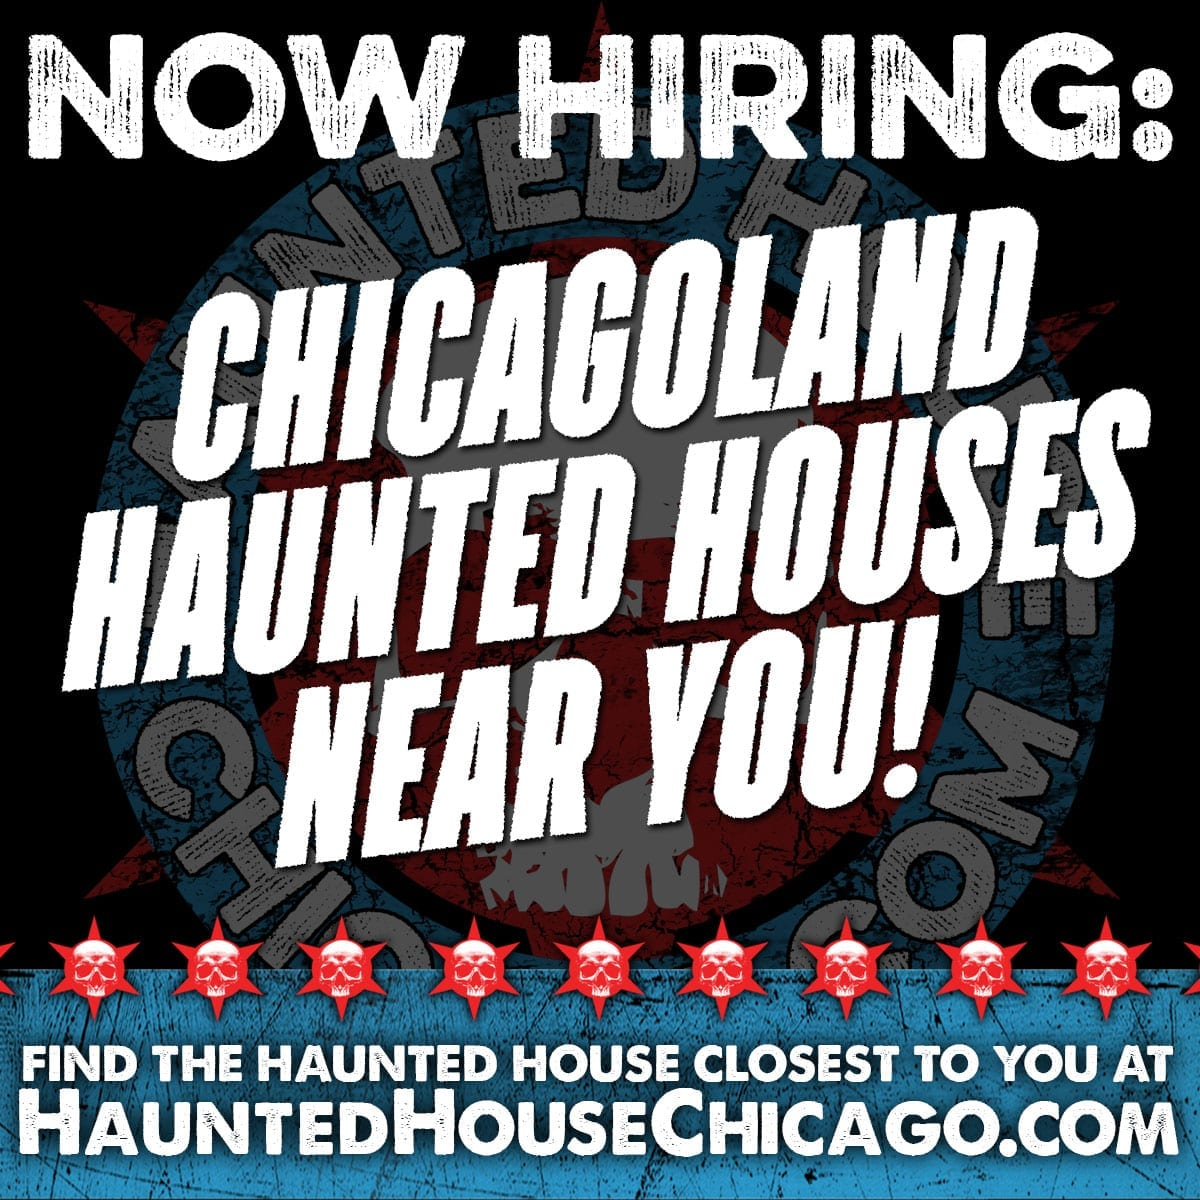 Cheap Haunted Houses Chicago Il: Chicagoland Haunted Houses: NOW HIRING!